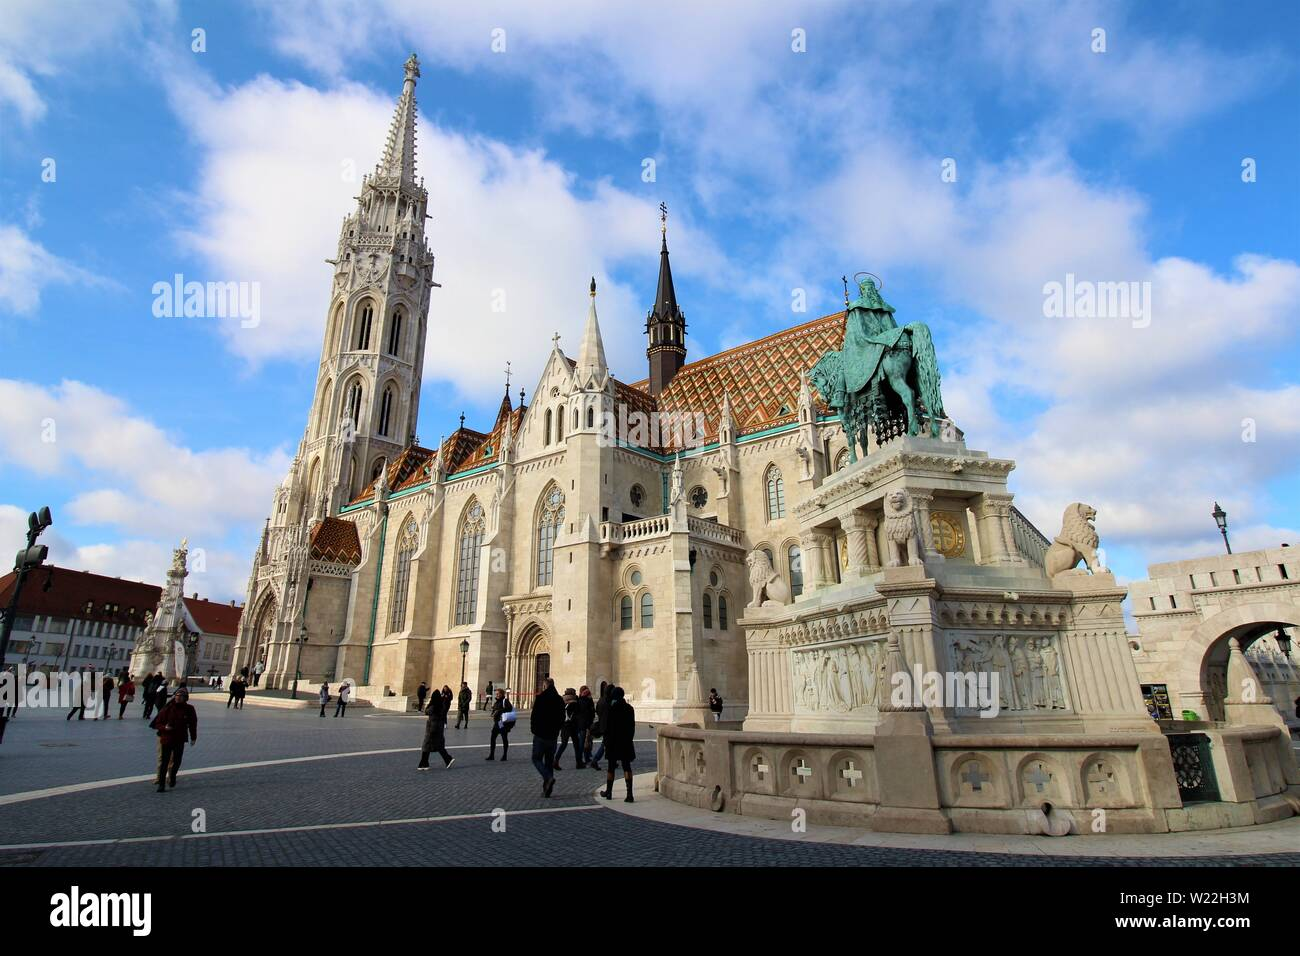 Tourists explore the southern courtyard of the Fisherman's Bastion alongside St Matthias Church, two of the top attractions of Budapest. Stock Photo